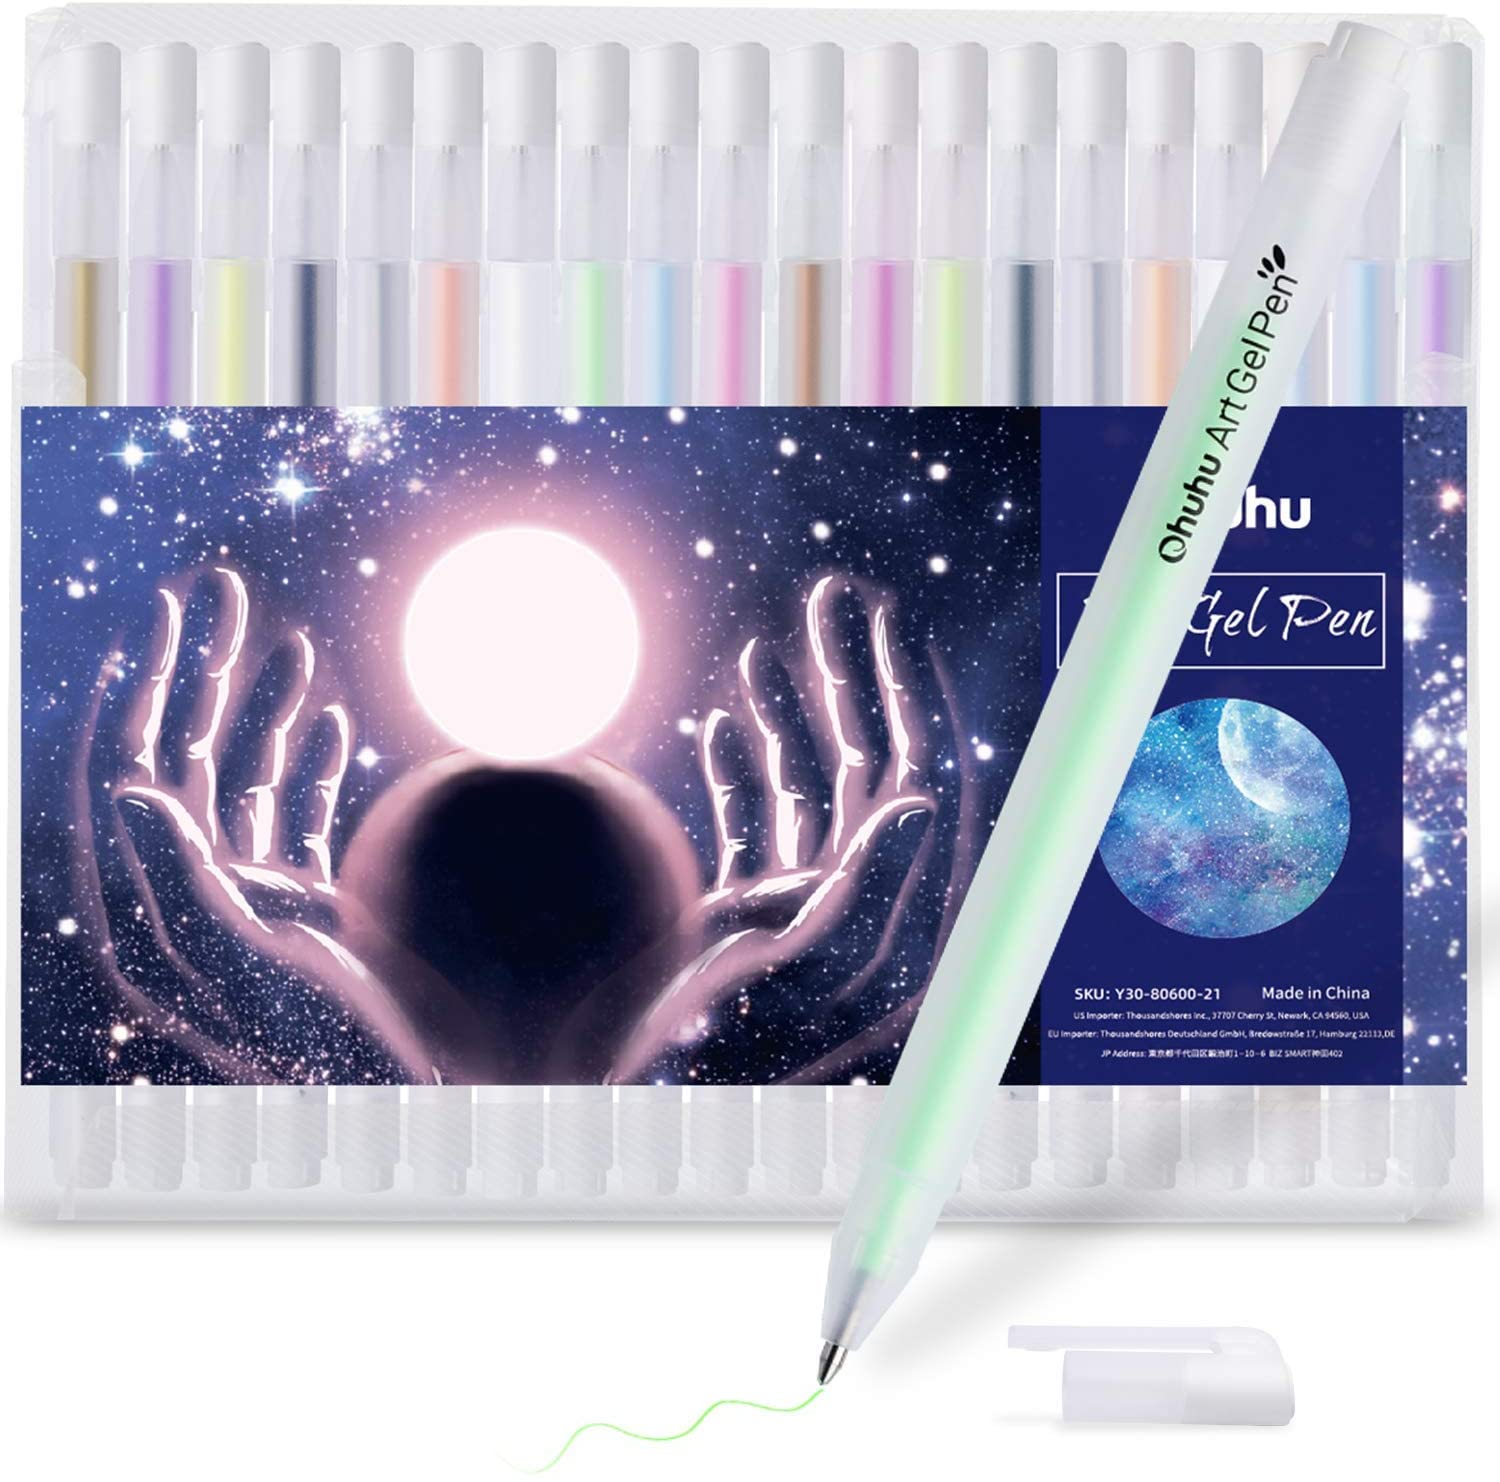 Gold Silver White Gel Pen Set for Artist, Ohuhu 10 Colors (20 Pack) Gel Ink Pens, White Pens for Highlighting on Markers Colored pencils Watercolor Paintings, Gel Paint Pens for Mothers Day Gift